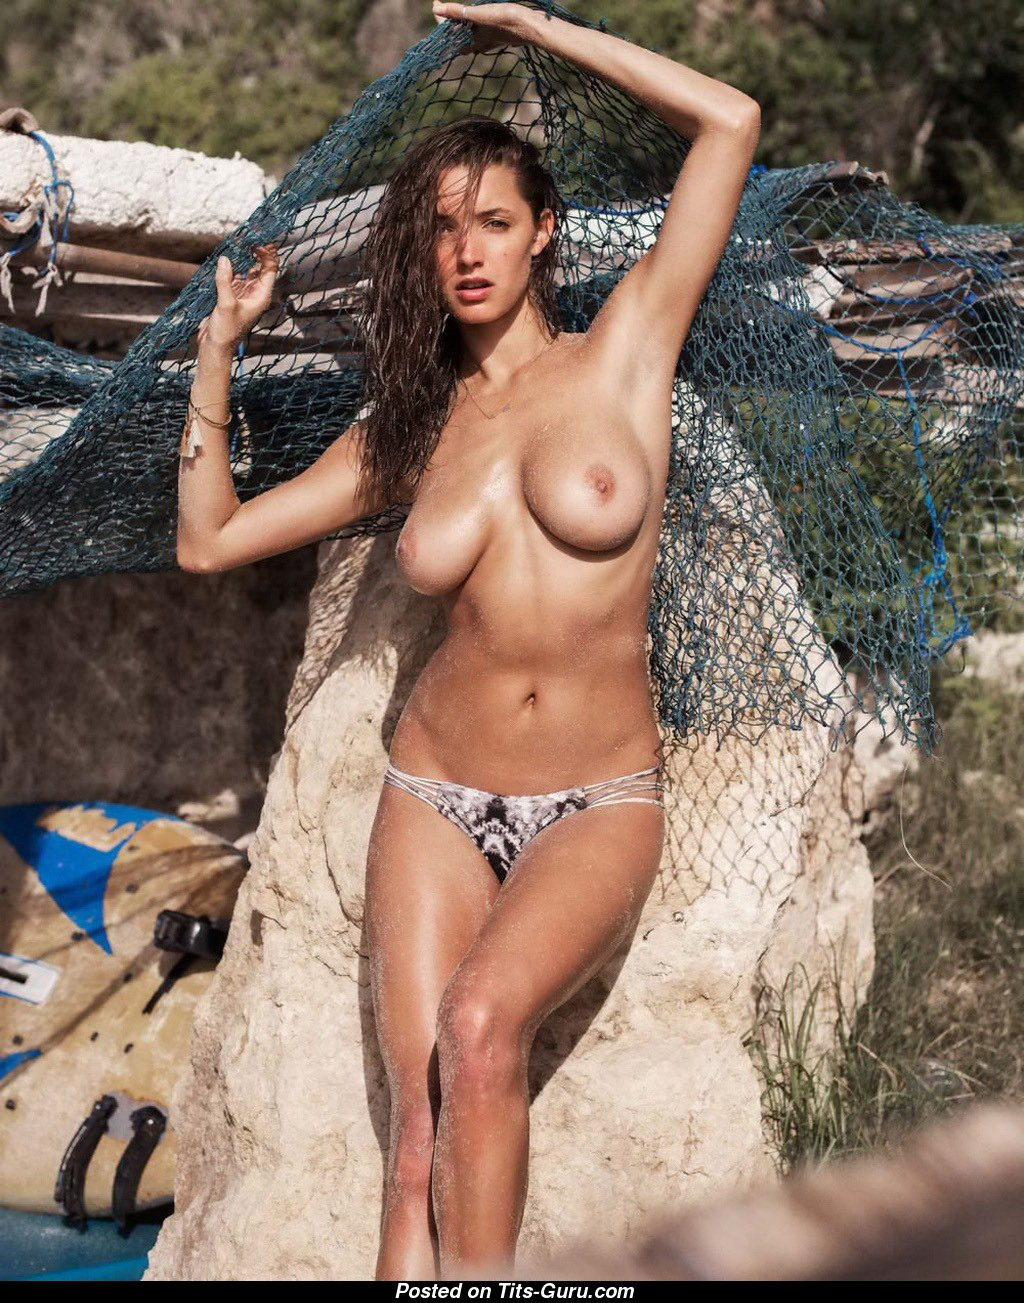 Alyssa Arce Nude alyssa arce - latina doll with nude natural soft melons